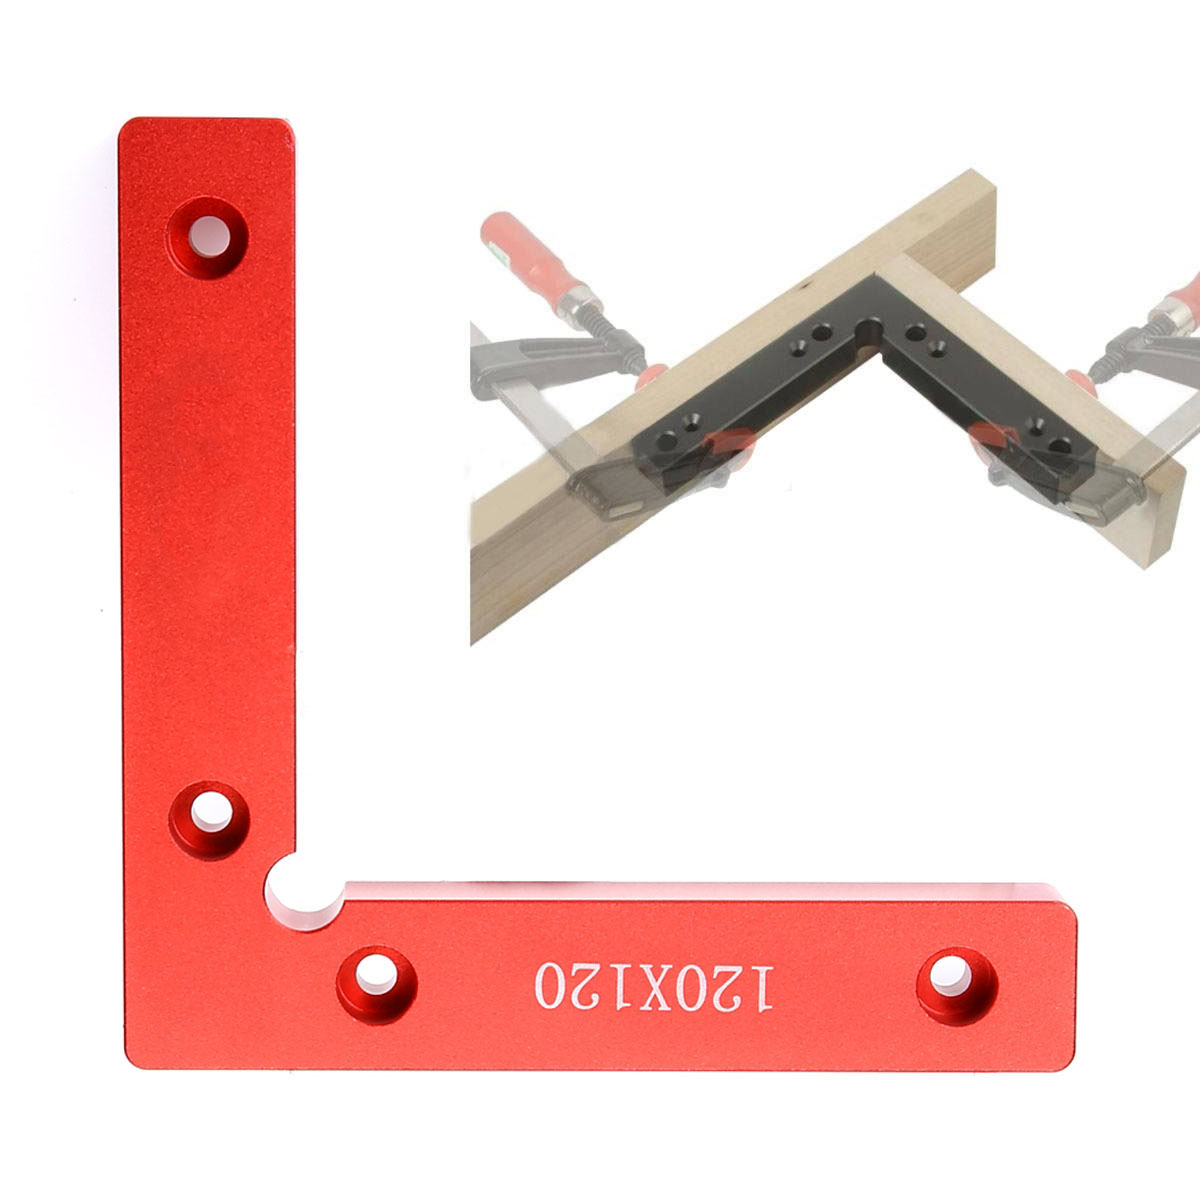 Mayitr L Shape Corner Clamp High Quality Wood Metal Right Angle 90 Degree Weld Welding Red NewMayitr L Shape Corner Clamp High Quality Wood Metal Right Angle 90 Degree Weld Welding Red New